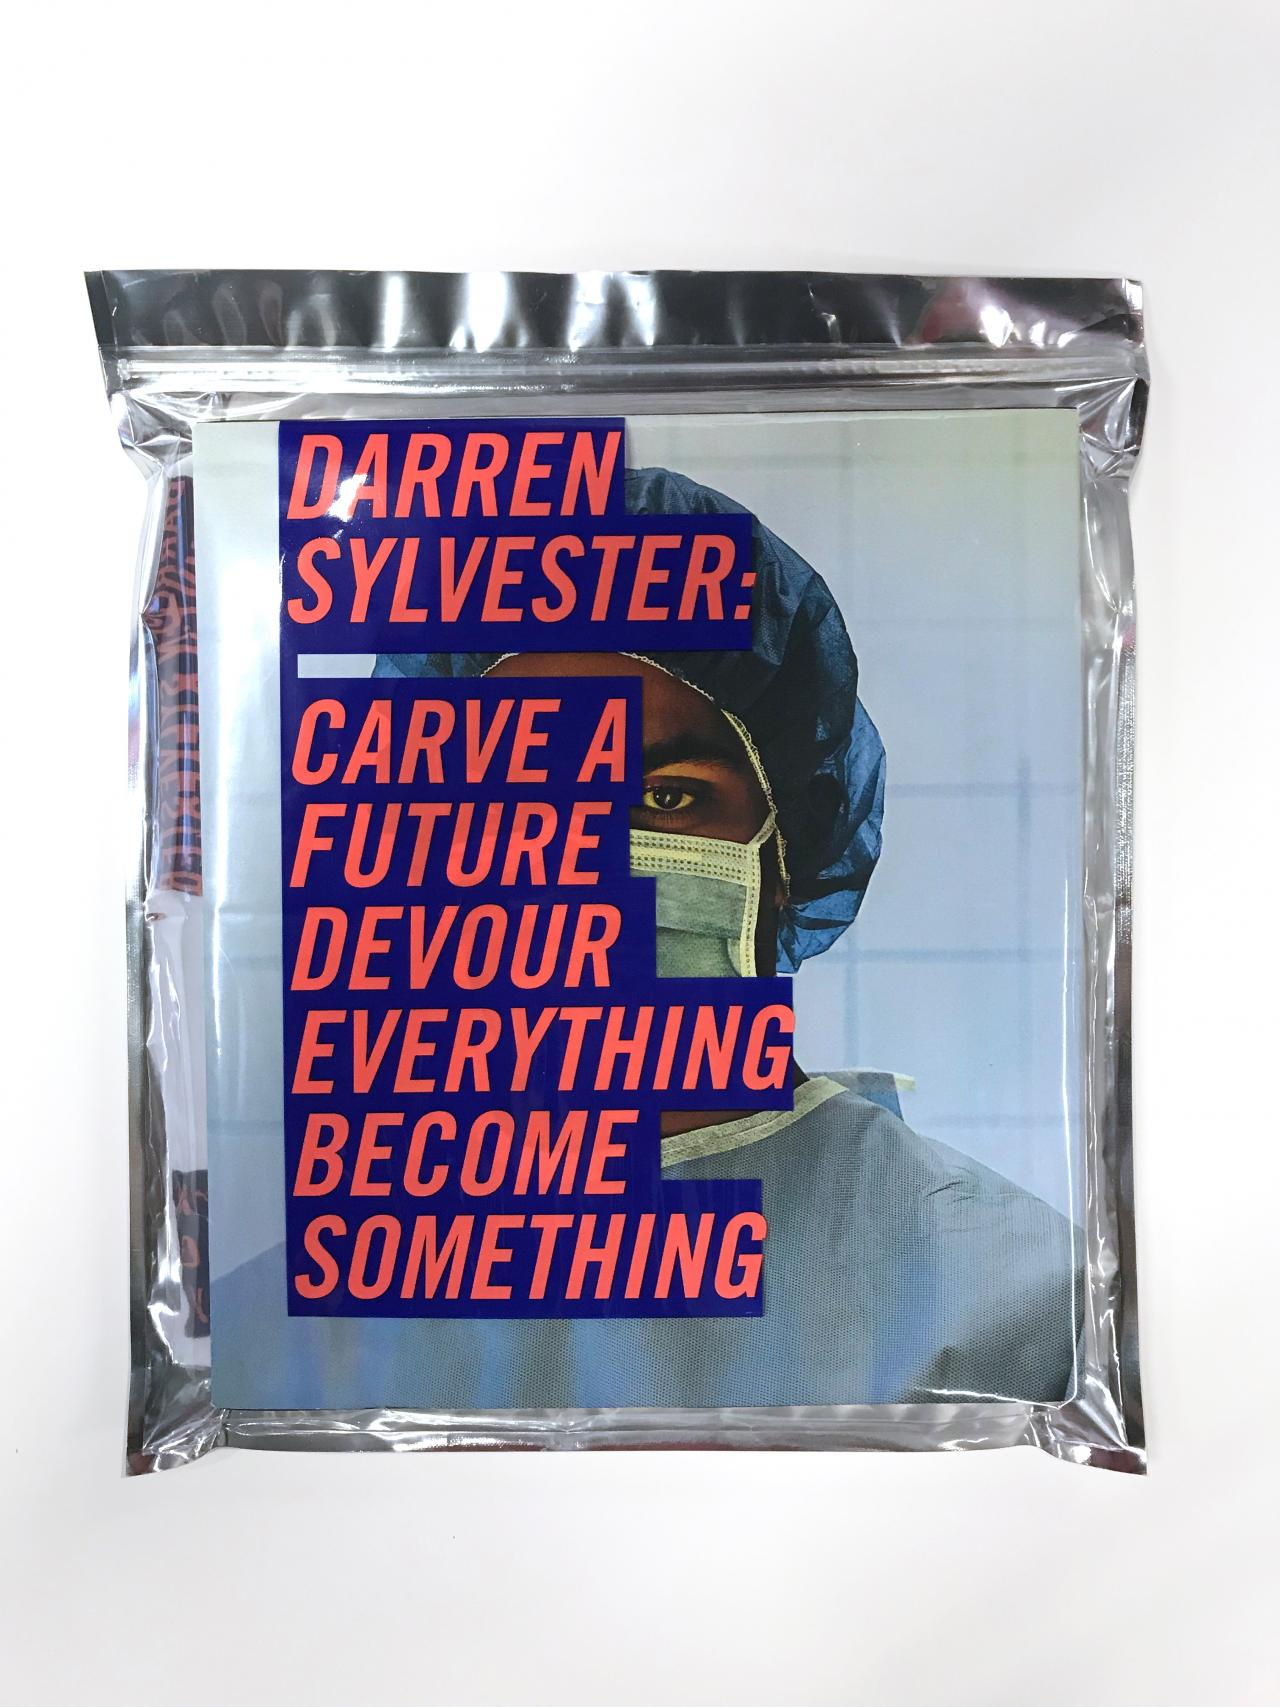 Darren Sylvester monograph Carve a Future, Devour Everything, Become Something (2019) by Maggie Finch and contributing authors Published by the National Gallery of Victoria, Melbourne